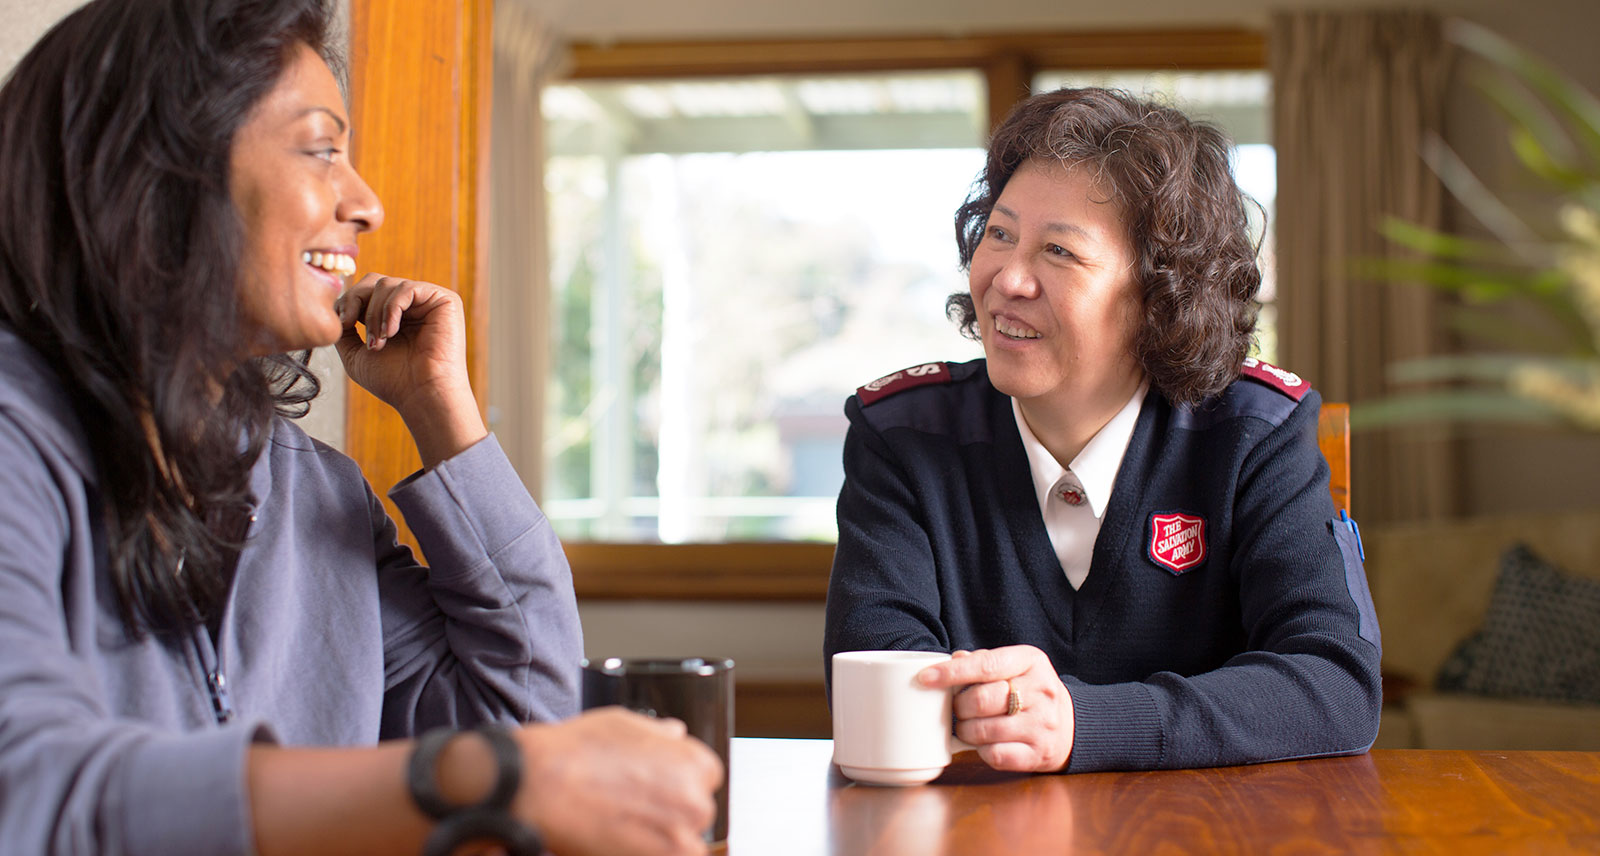 Salvation Army Officer listening to a client